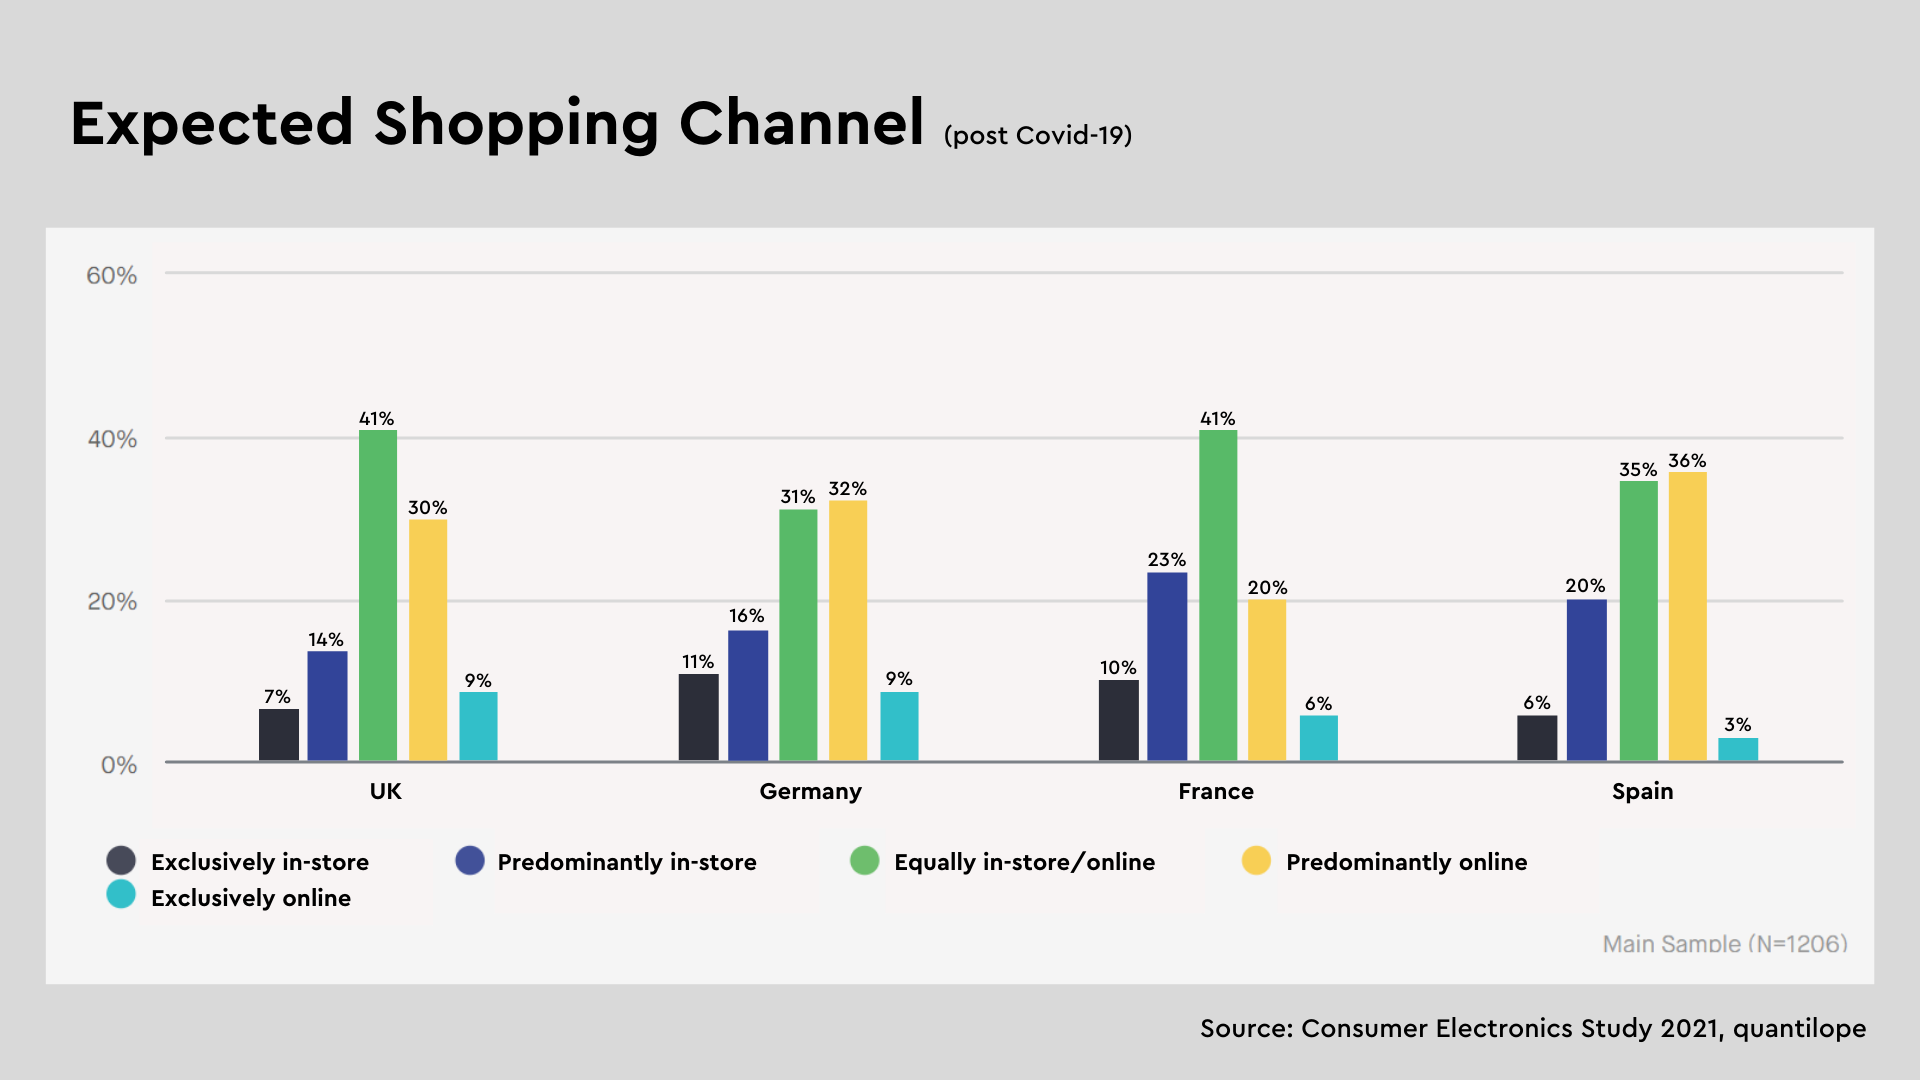 Expected-shopping-channel-consumer-electronics-2021